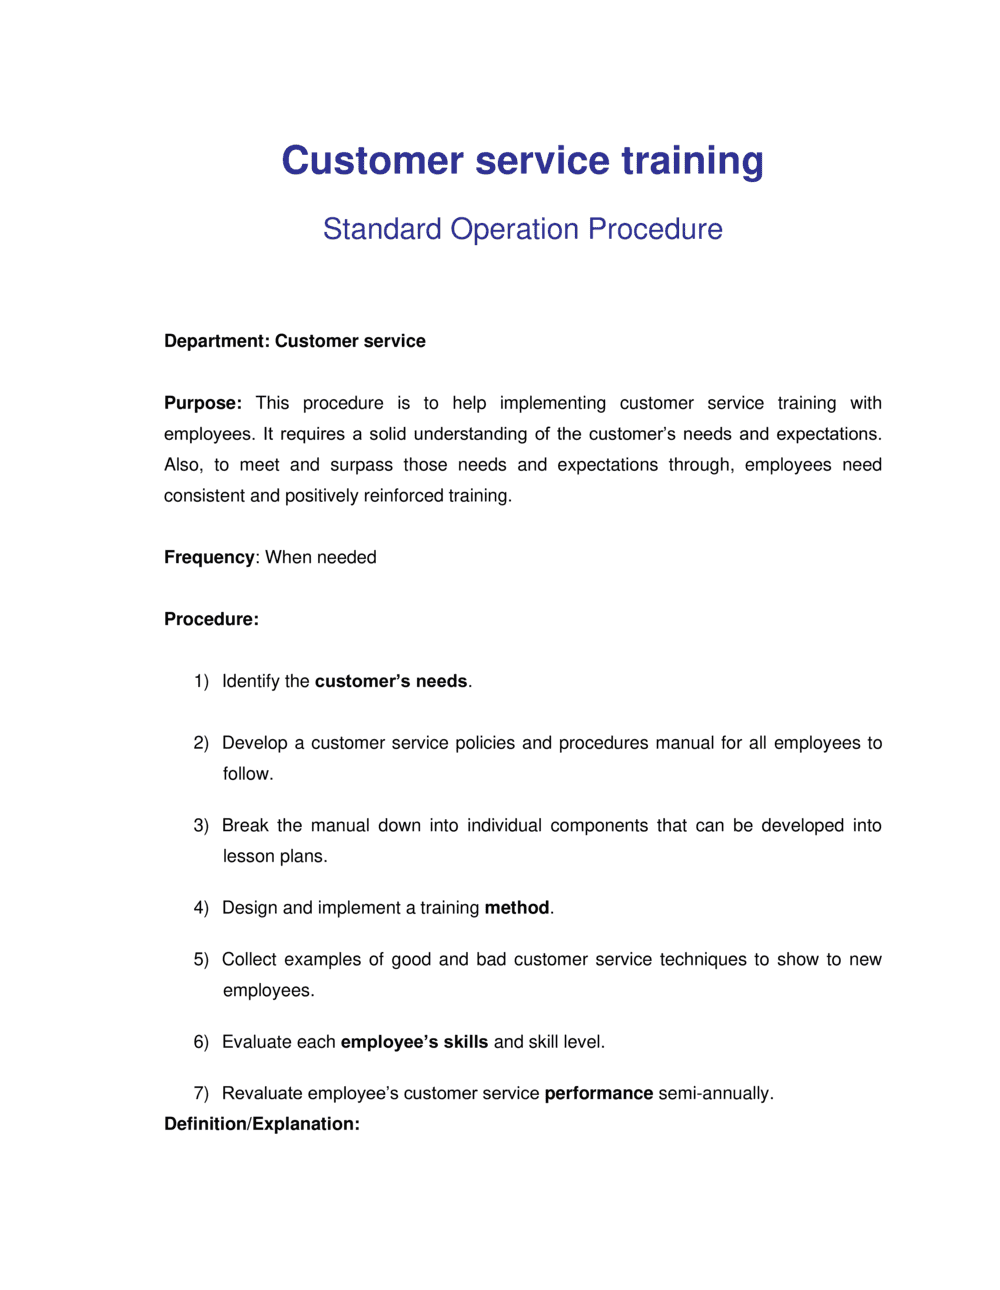 Business-in-a-Box's How to Implement Customer Service Training